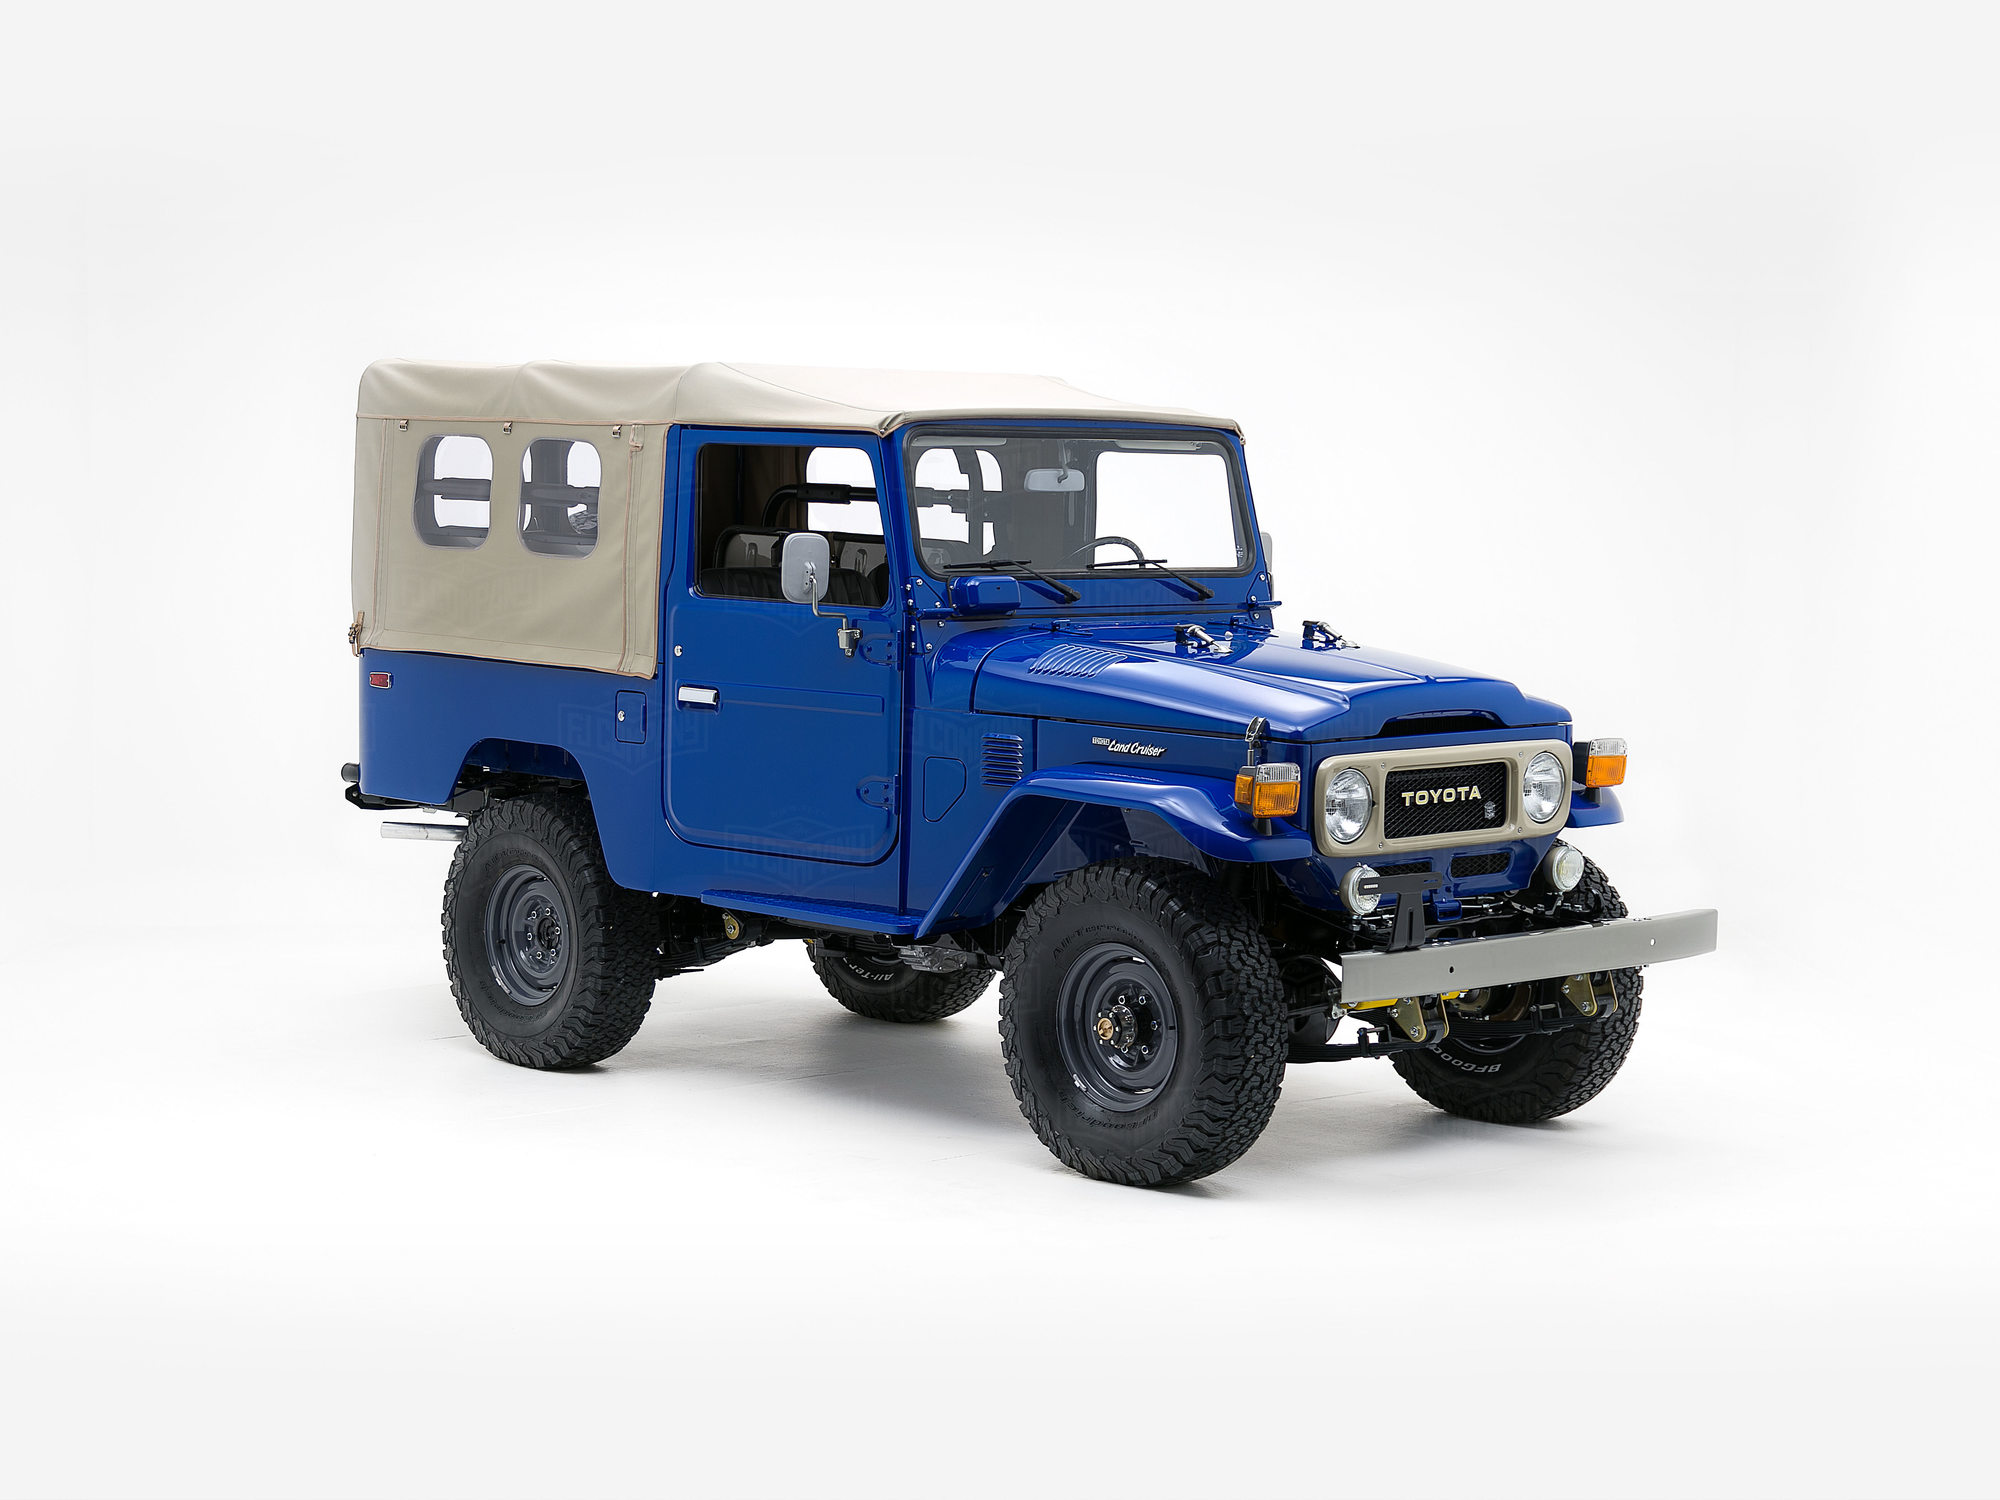 Toyota Land Cruiser 1982 FJ43 Medium Blue